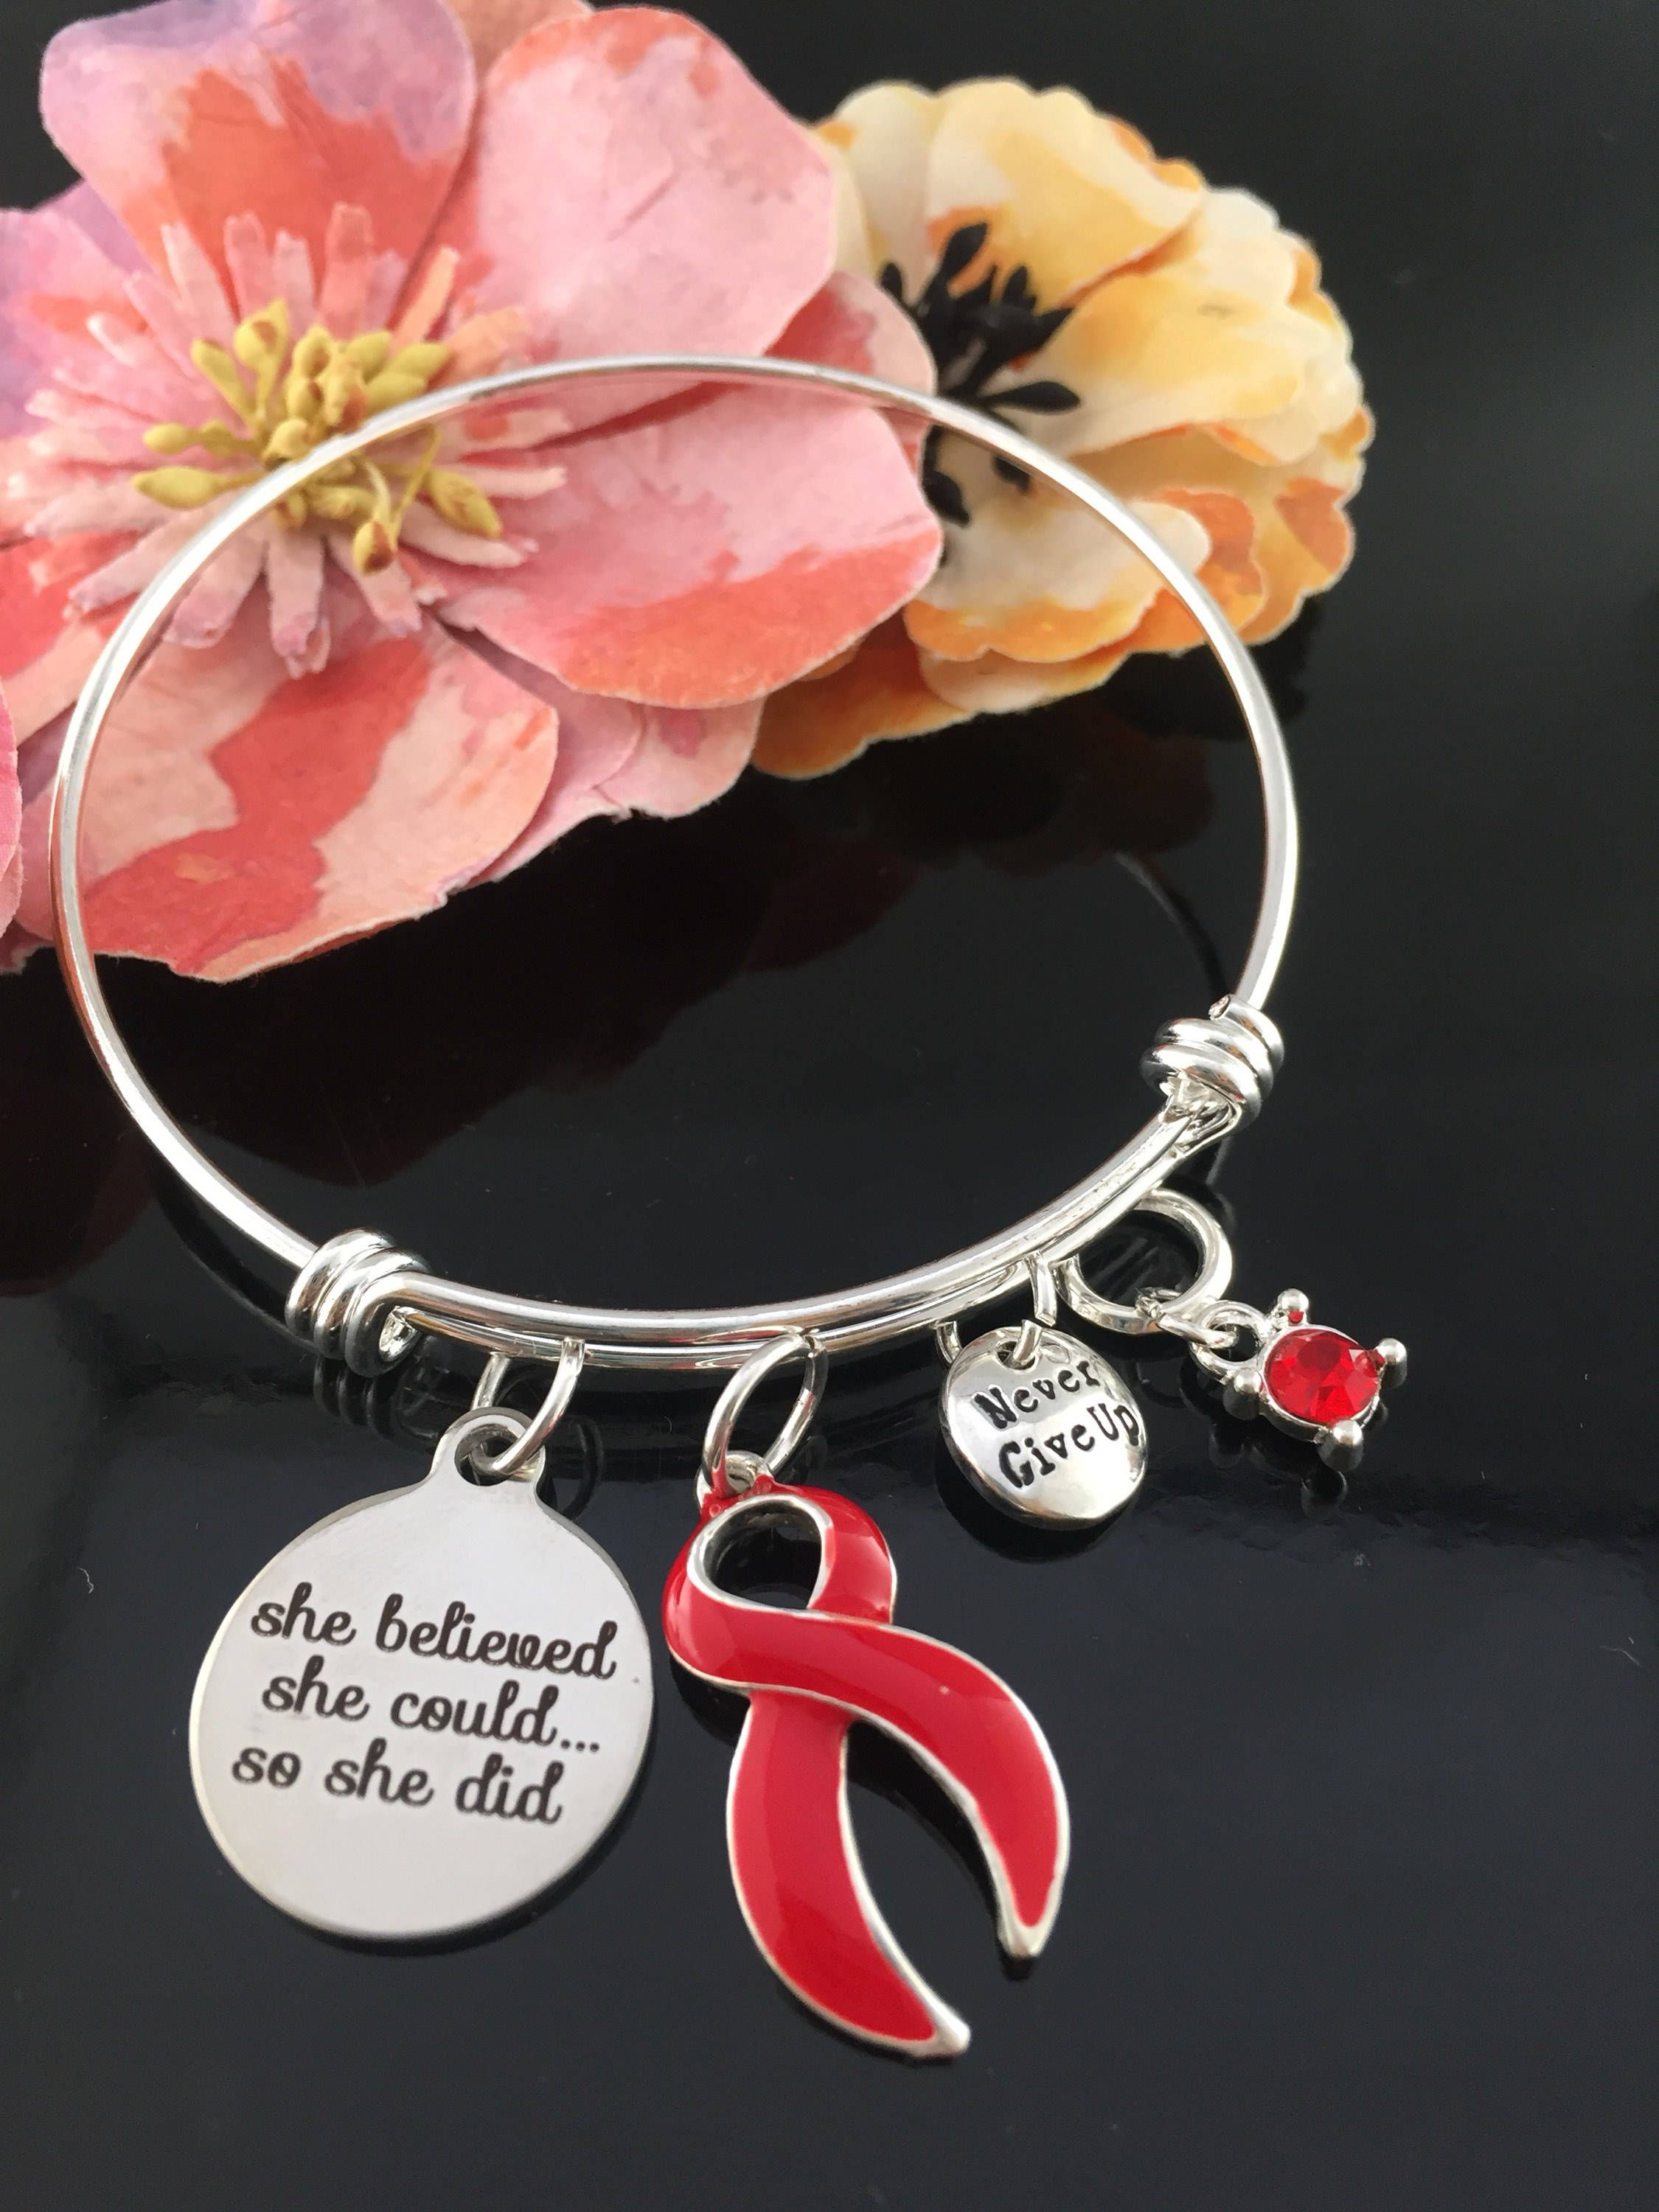 stamped dysautonomia charms jewelry hand bangle bracelets xarelto bracelet a charm taking personalized medical custom new and collections gadow adjustable expandable ebay